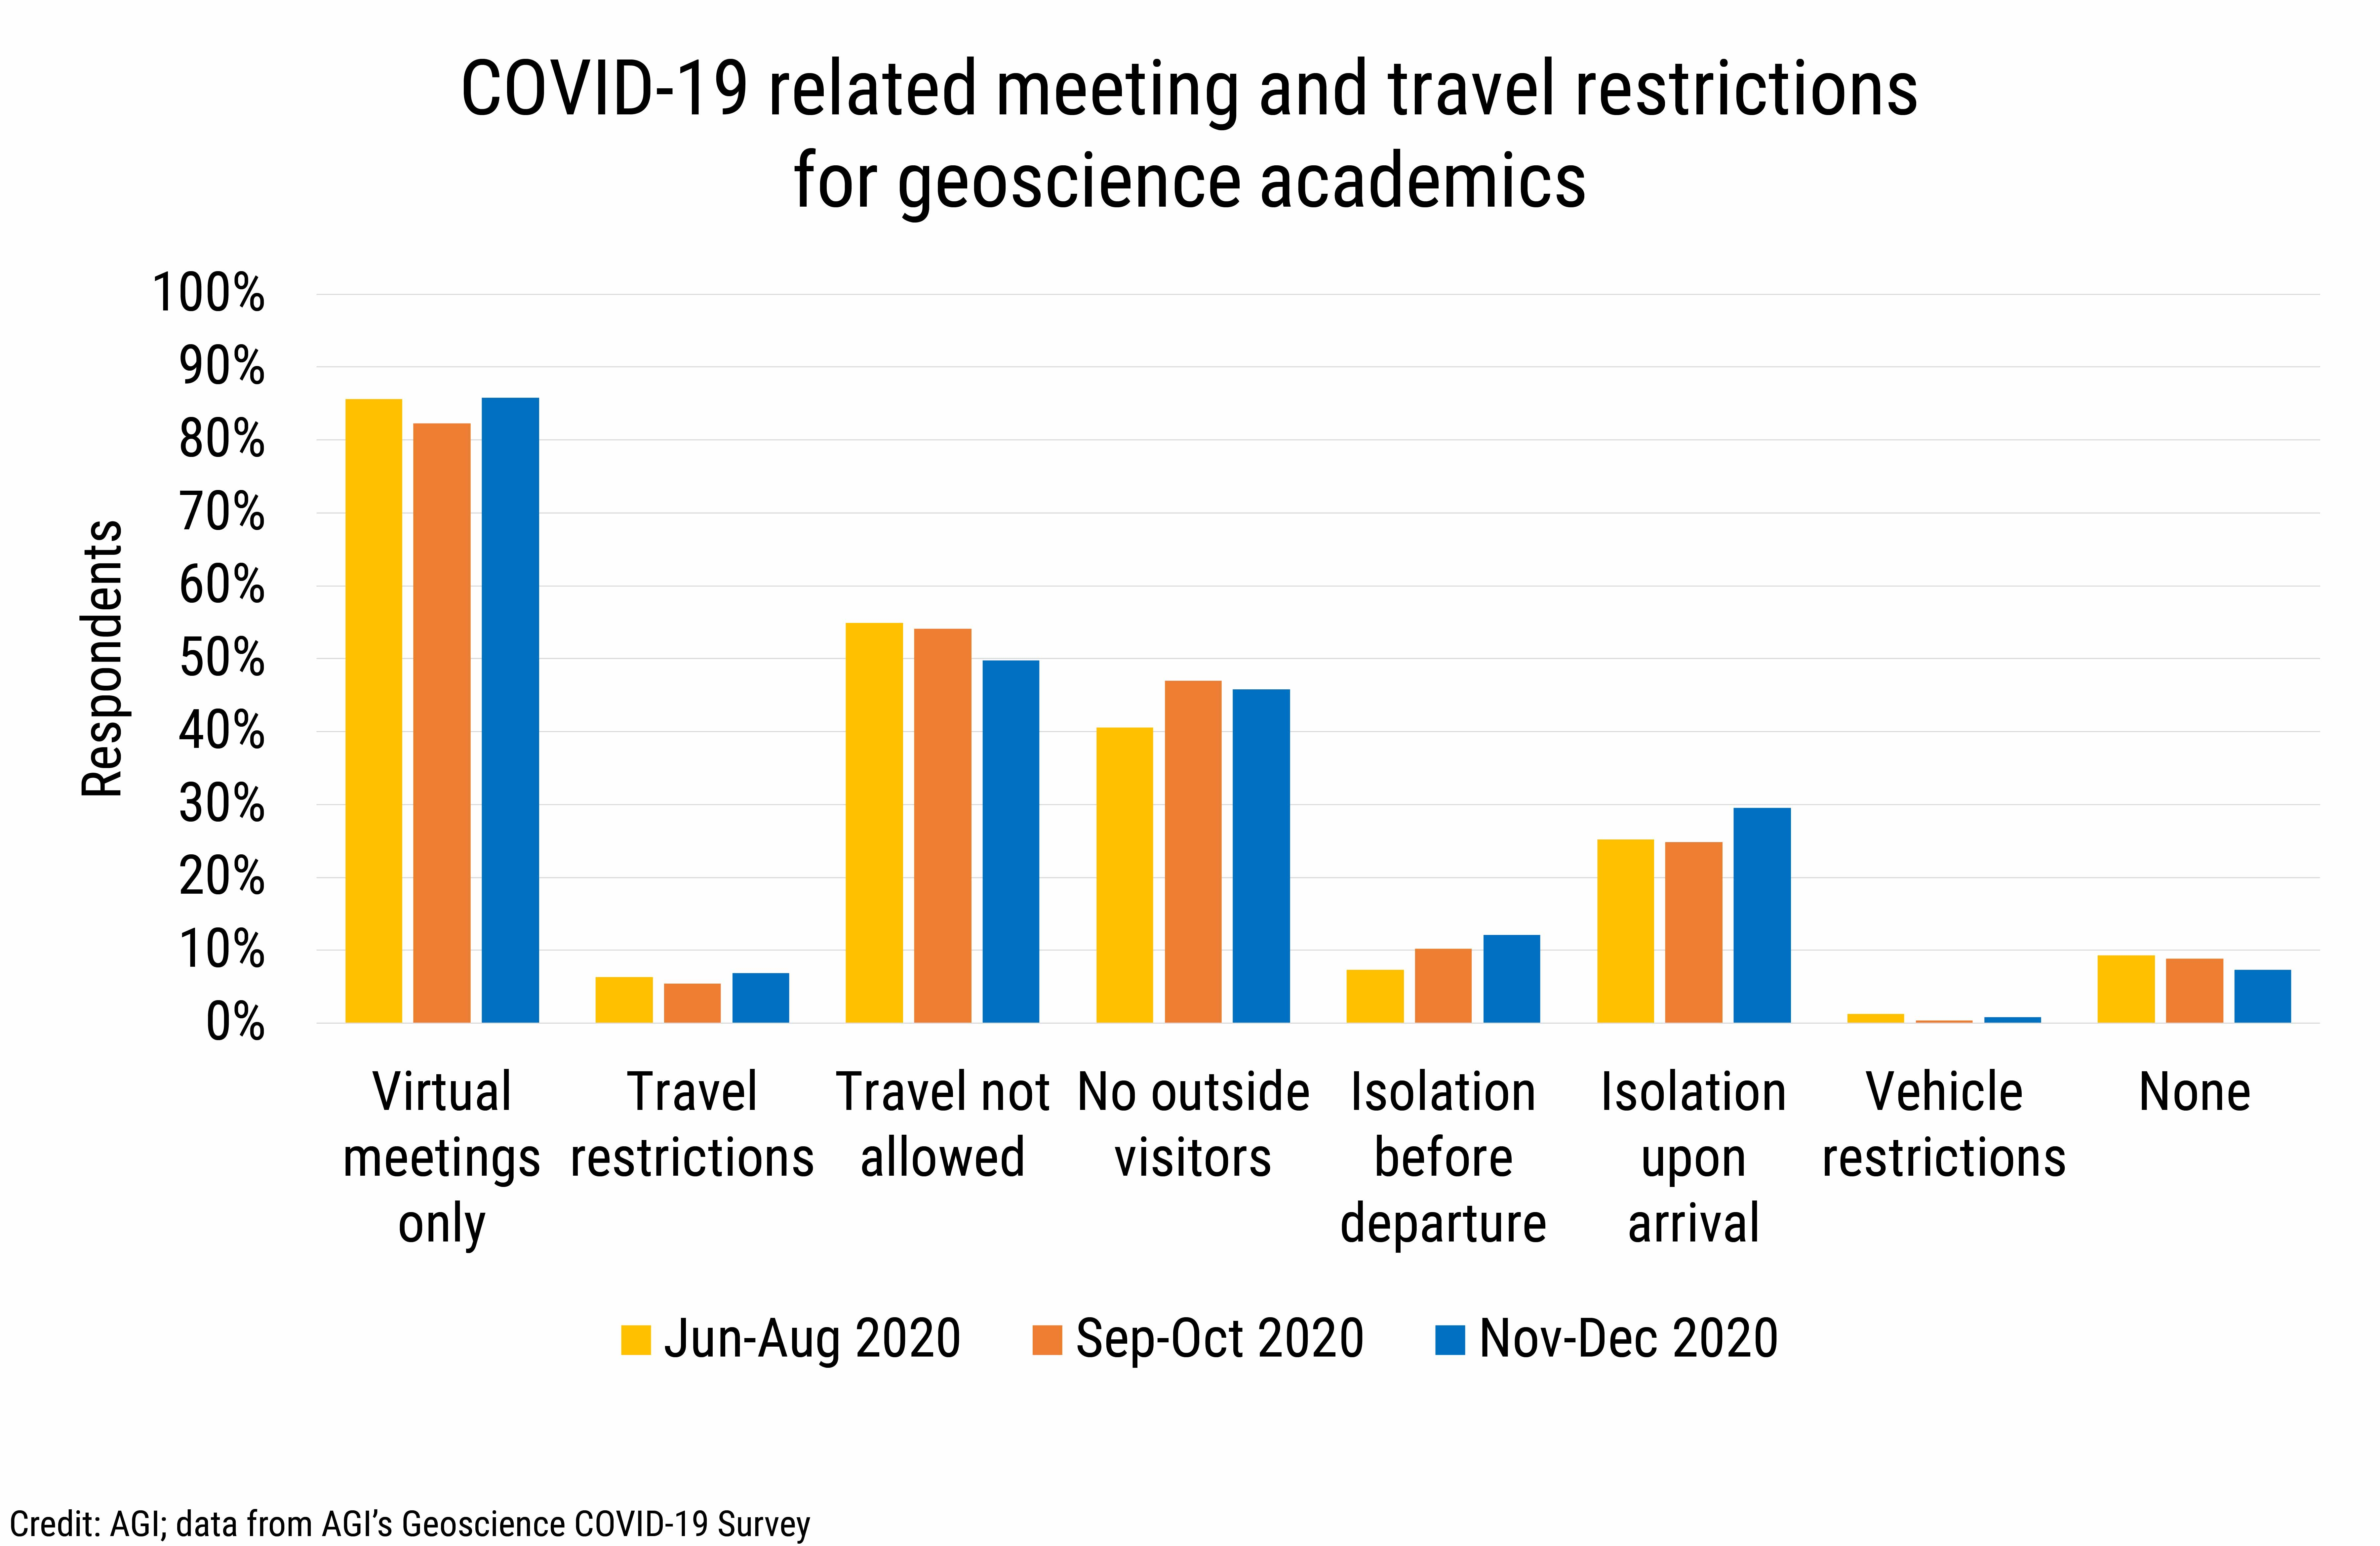 DB_2021-002 chart 12: COVID-19 related meeting and travel restrictions for geoscience academics (Credit: AGI; data from AGI's Geoscience COVID-19 Survey)